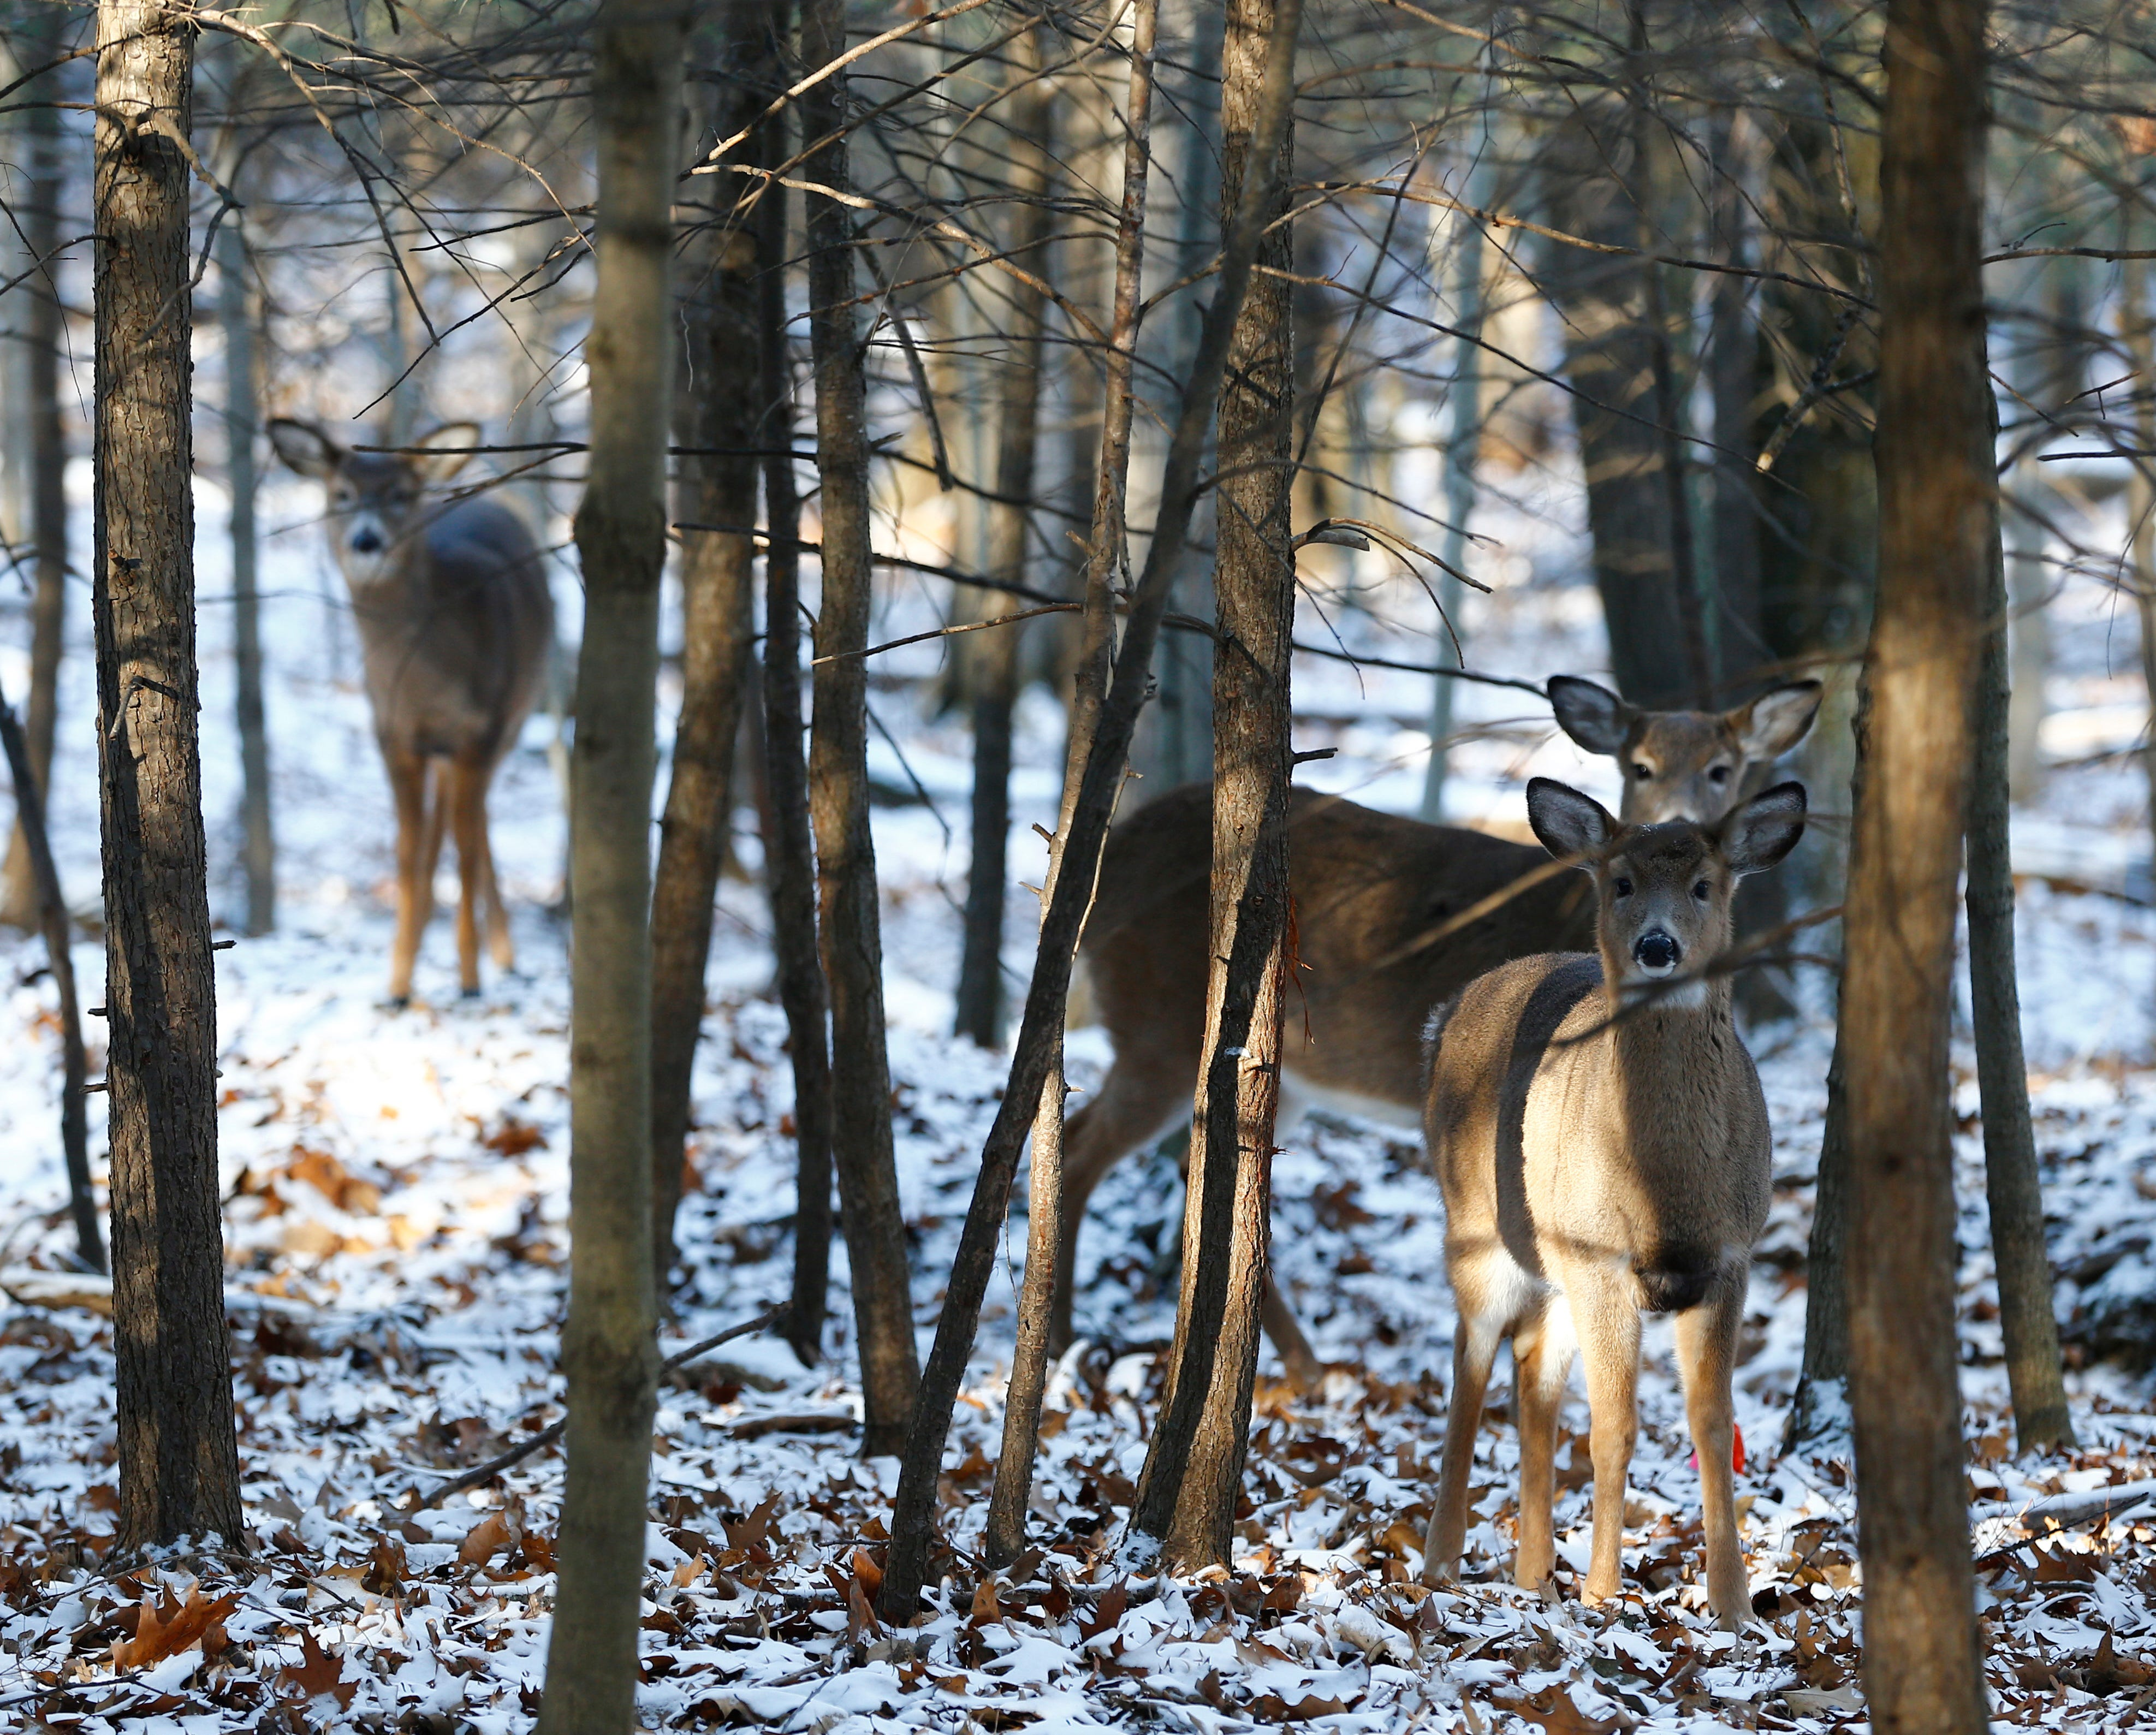 Binghamton University in New York set to kill up to 50 deer on campus in bowhunt